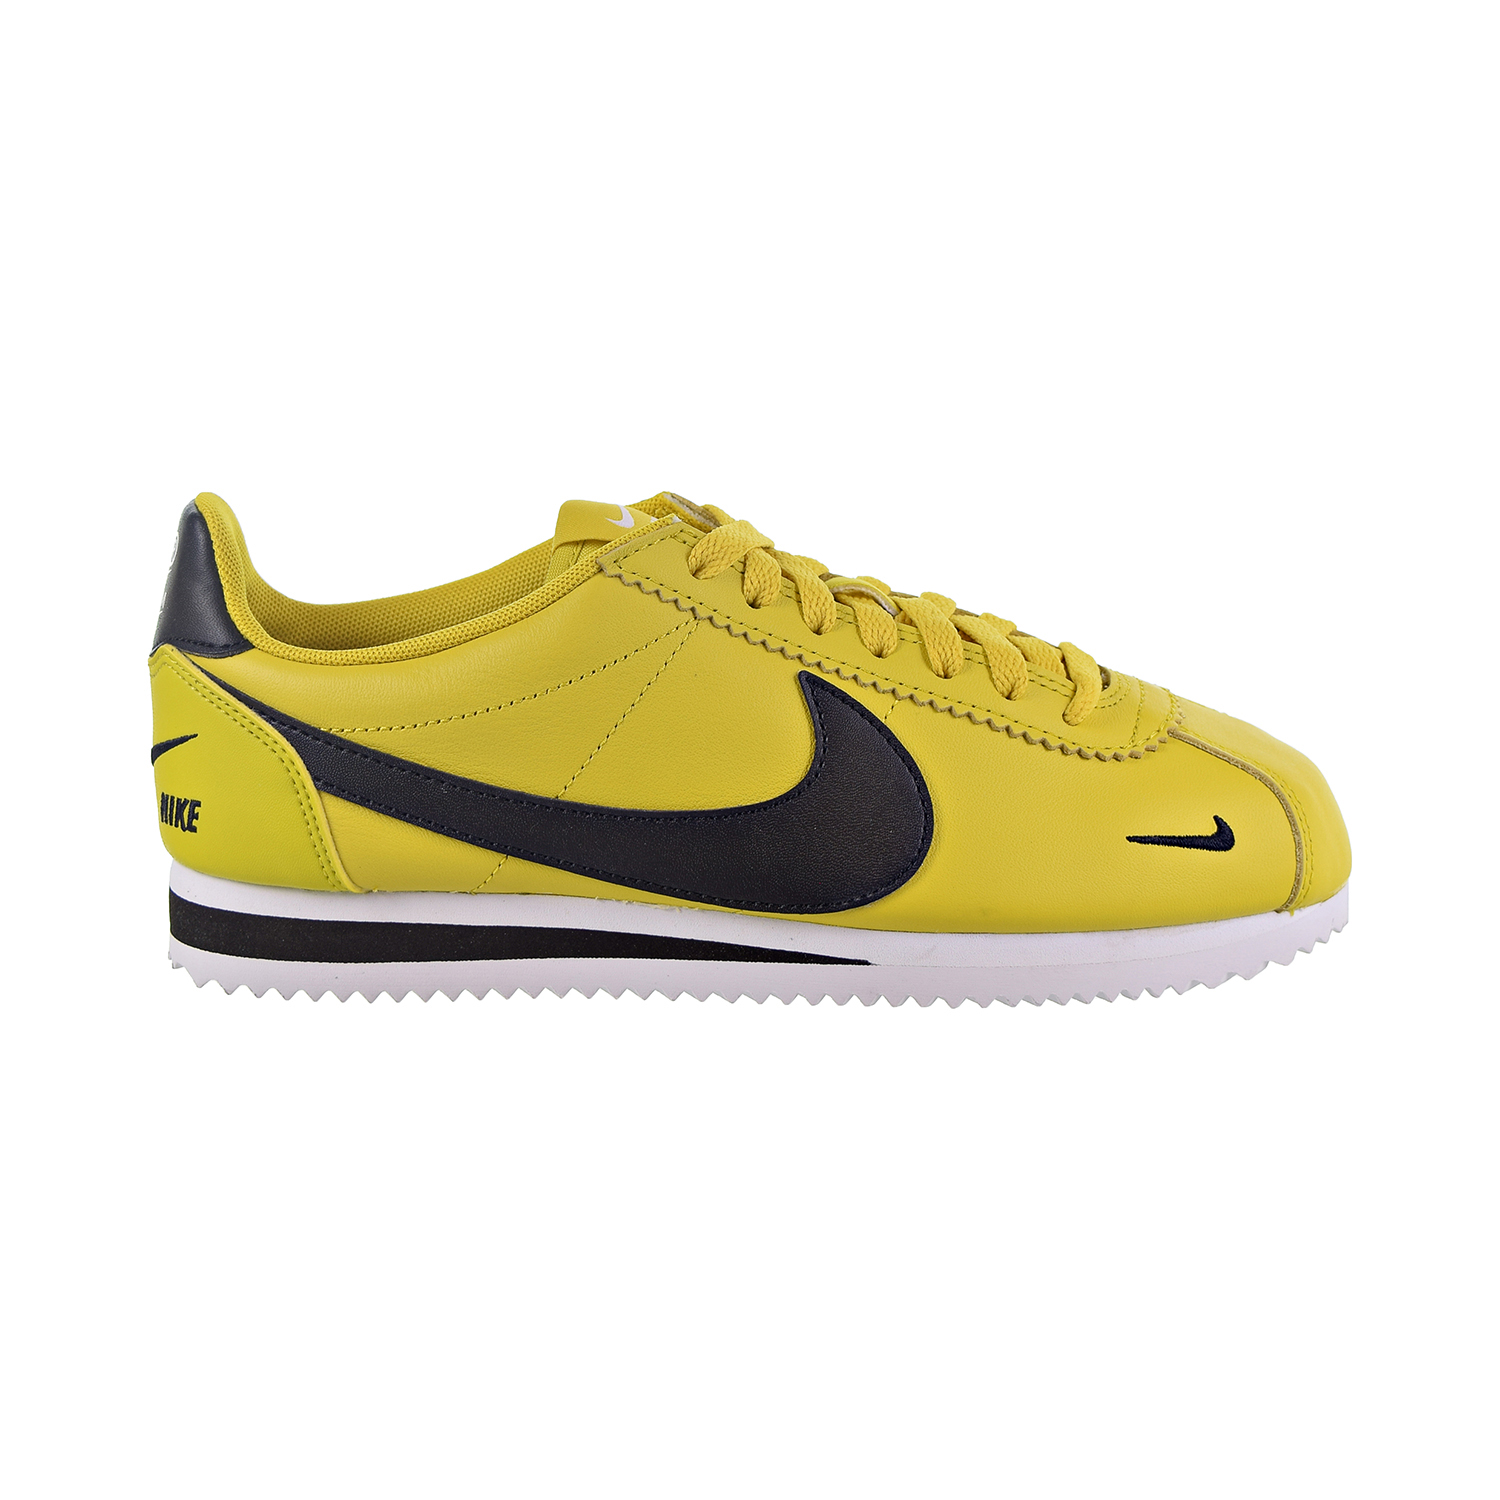 outlet store 1d598 73c10 Details about Nike Classic Cortez Premium Men's Shoes Bright  Citron/Black/White 807480-700